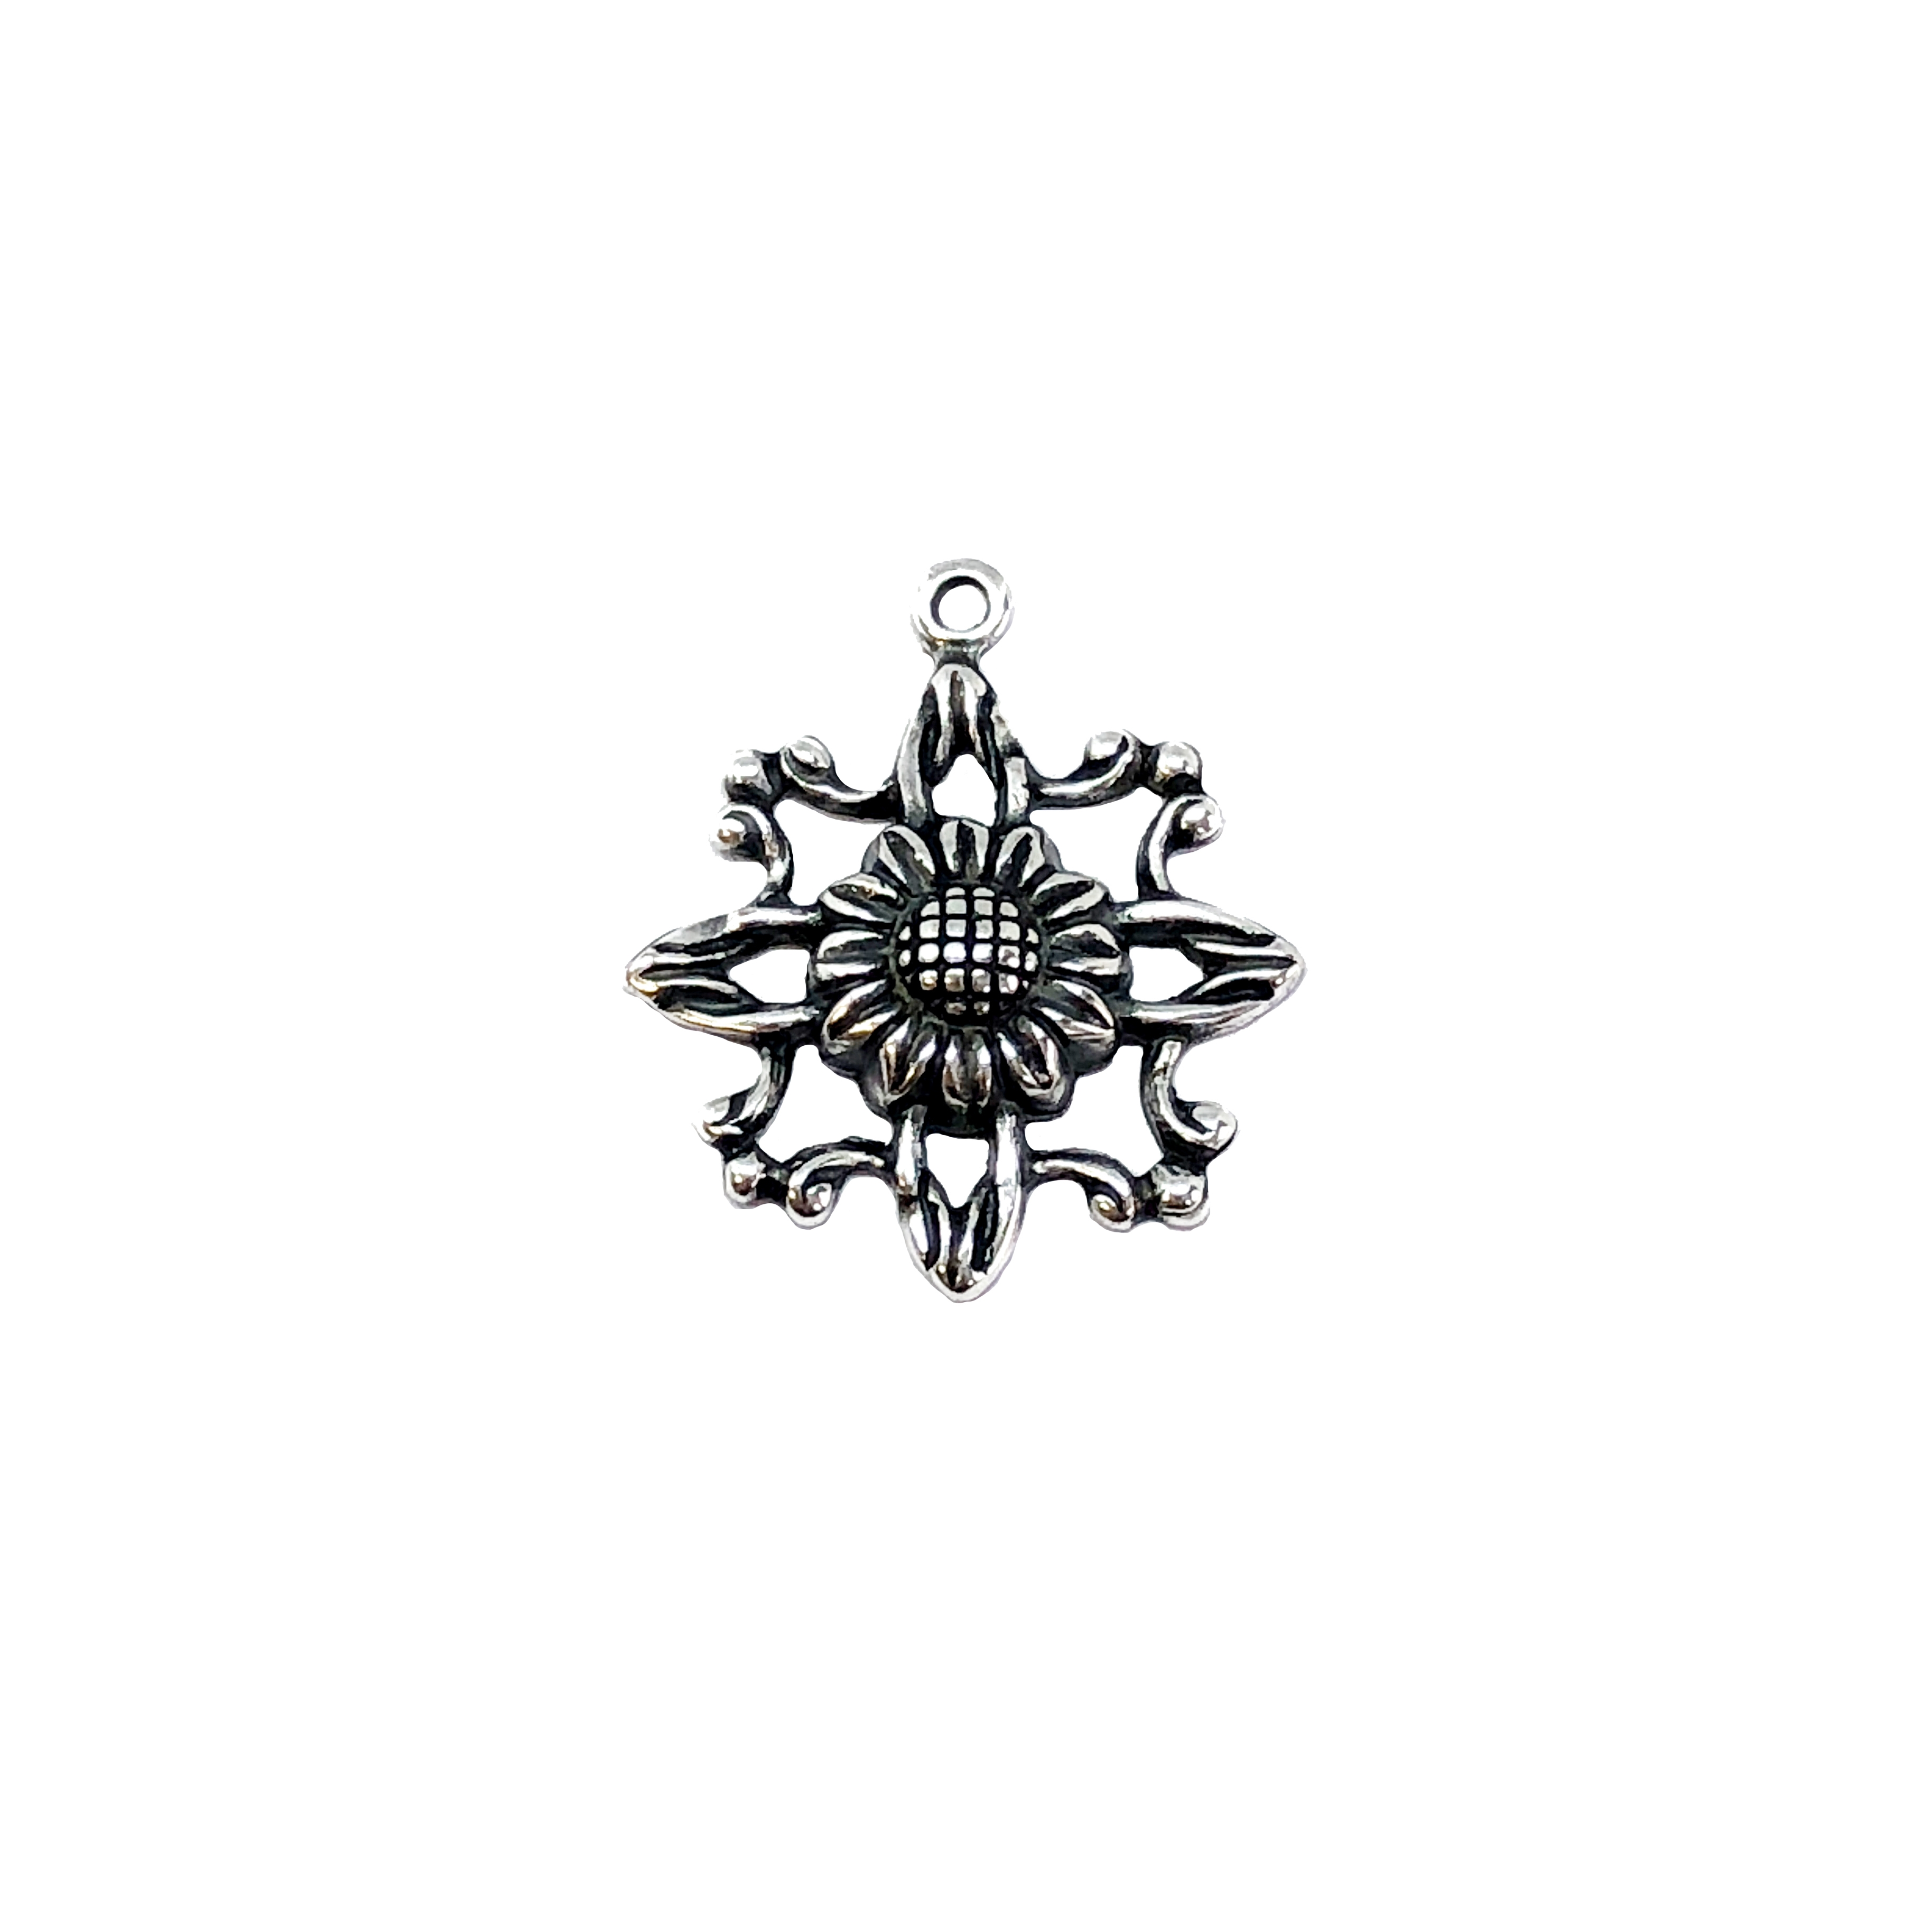 filigree flower drop, silverware silver plate, filigree, flower drop, sunflower stamping, charms, sunflower, 16x17mm, pieced, stamping, antique silver, brass, flower charm, flower, us made, nickel free, B'sue Boutiques, jewelry supplies, 04811